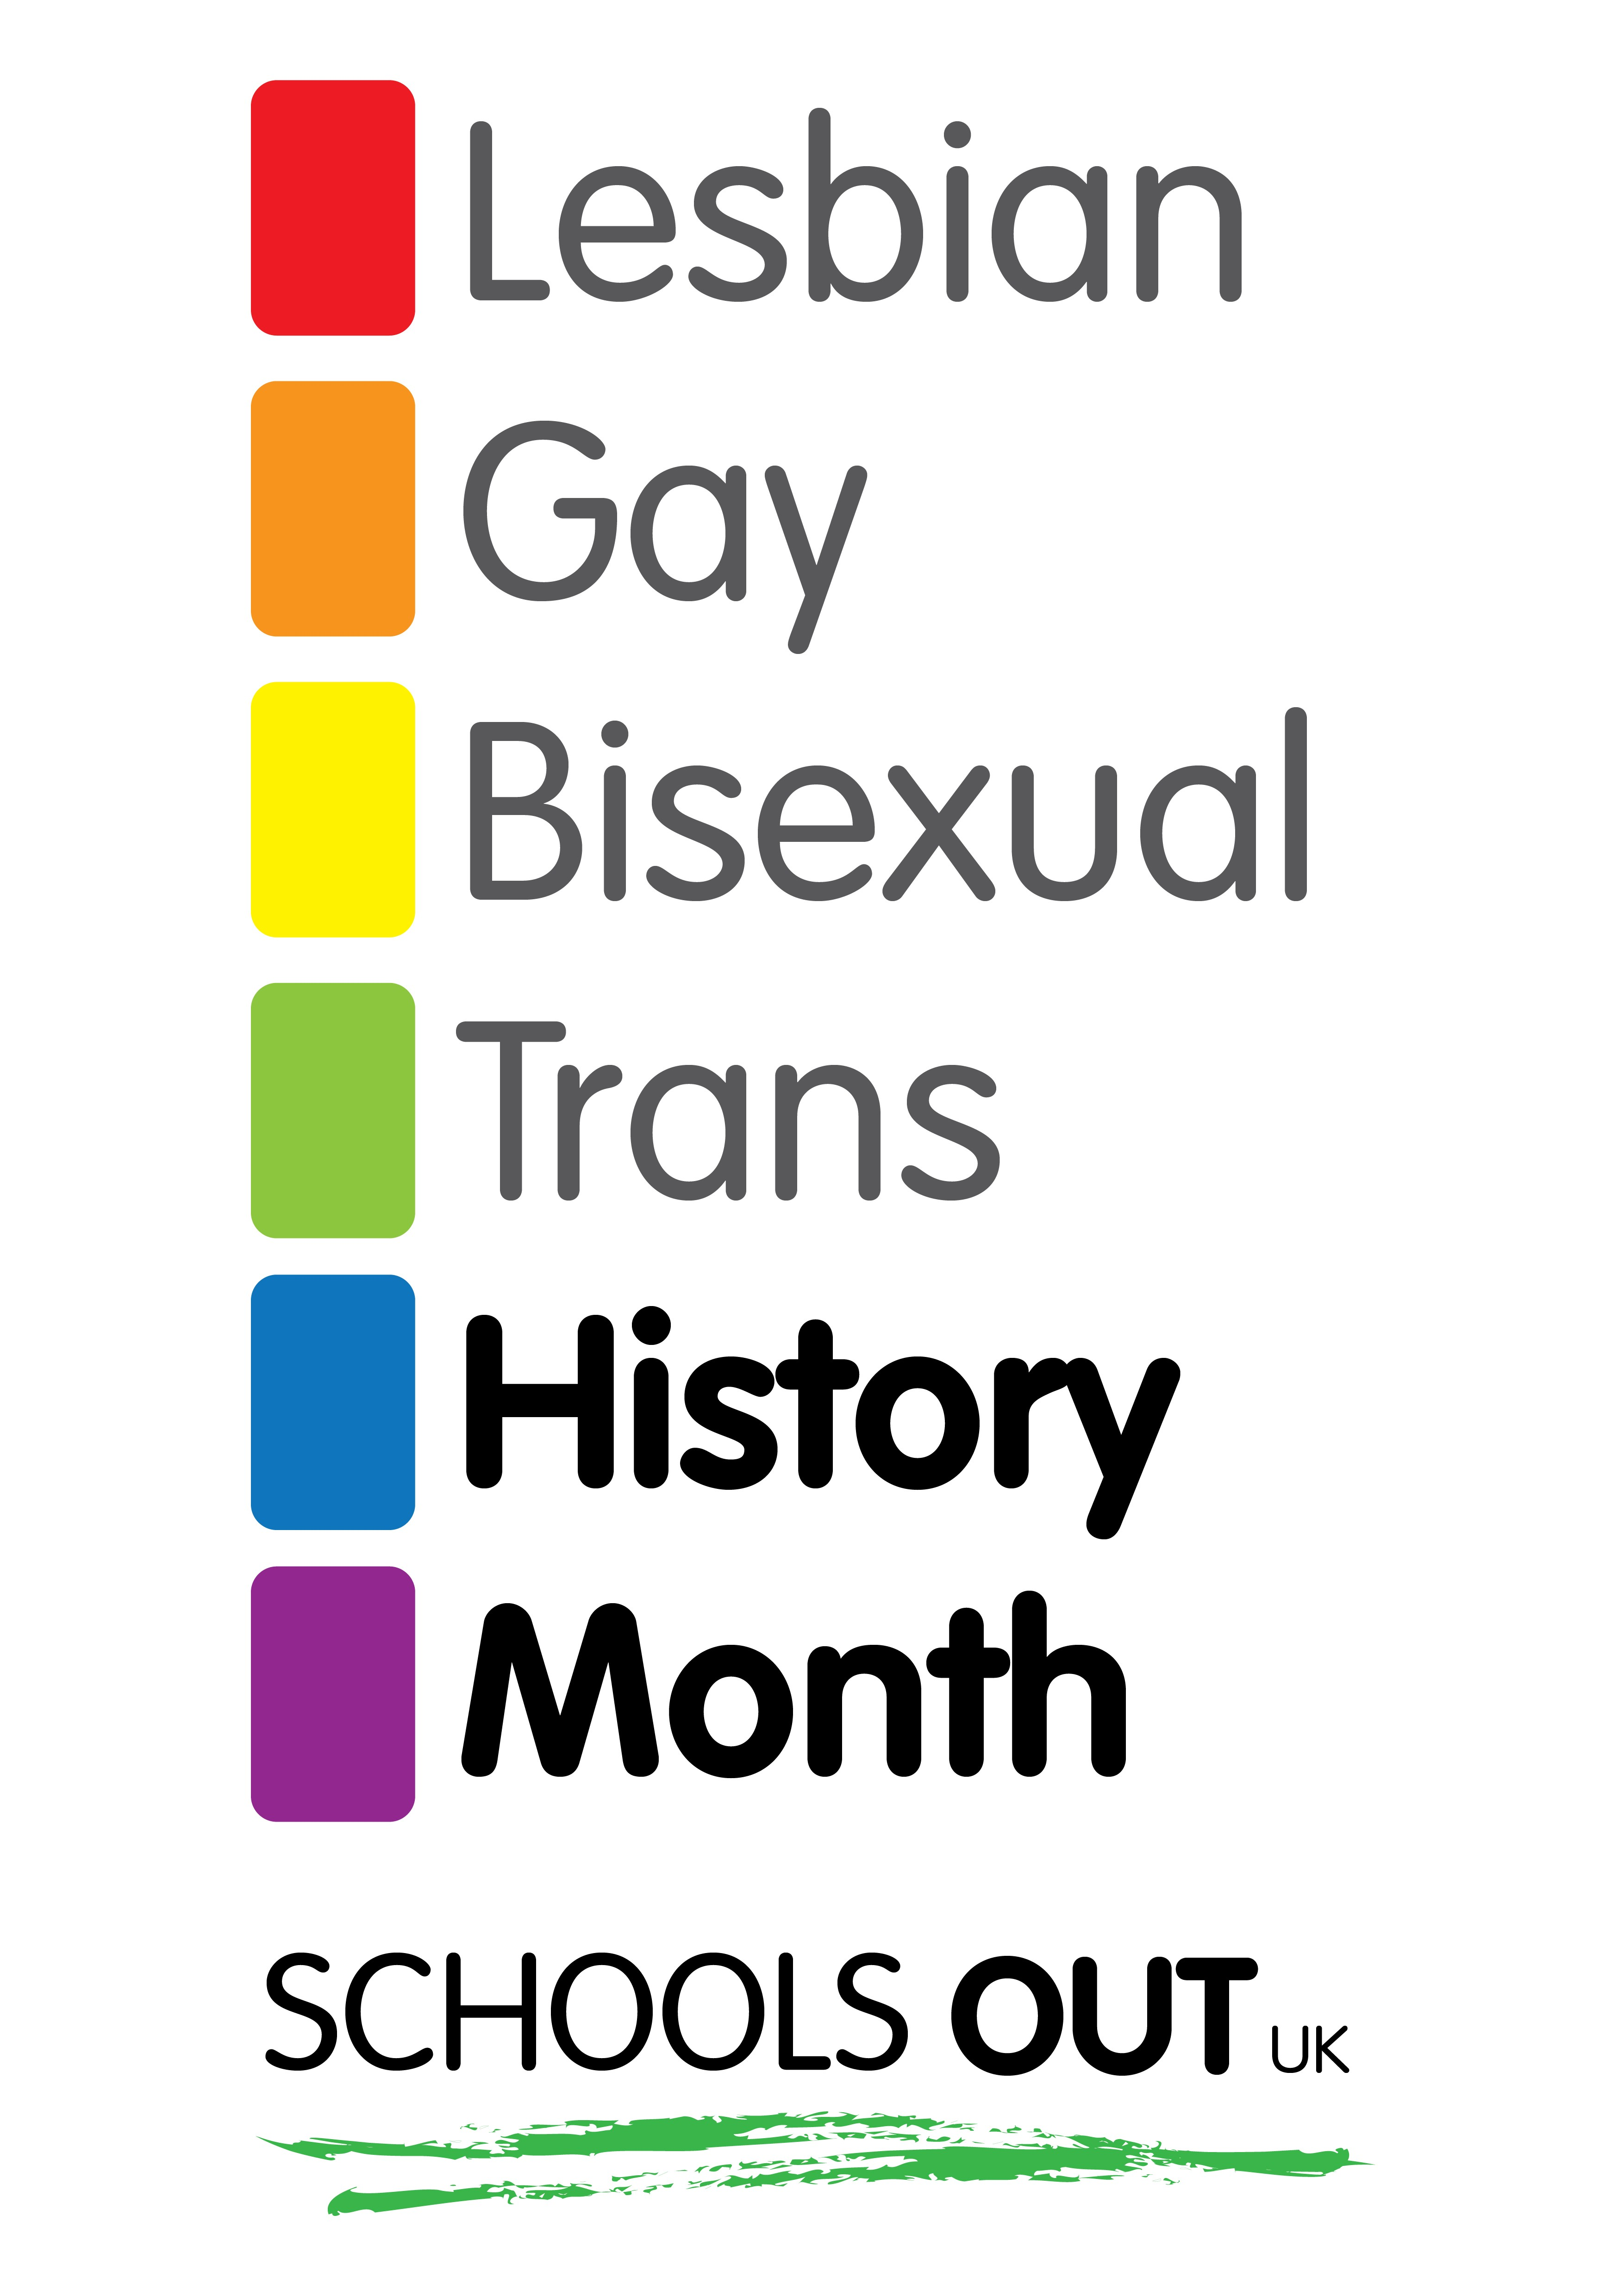 March Reading Month Calendar Activities Recientes Lgbt History Month Resources Of March Reading Month Calendar Activities Más Populares Old Style and New Style Dates